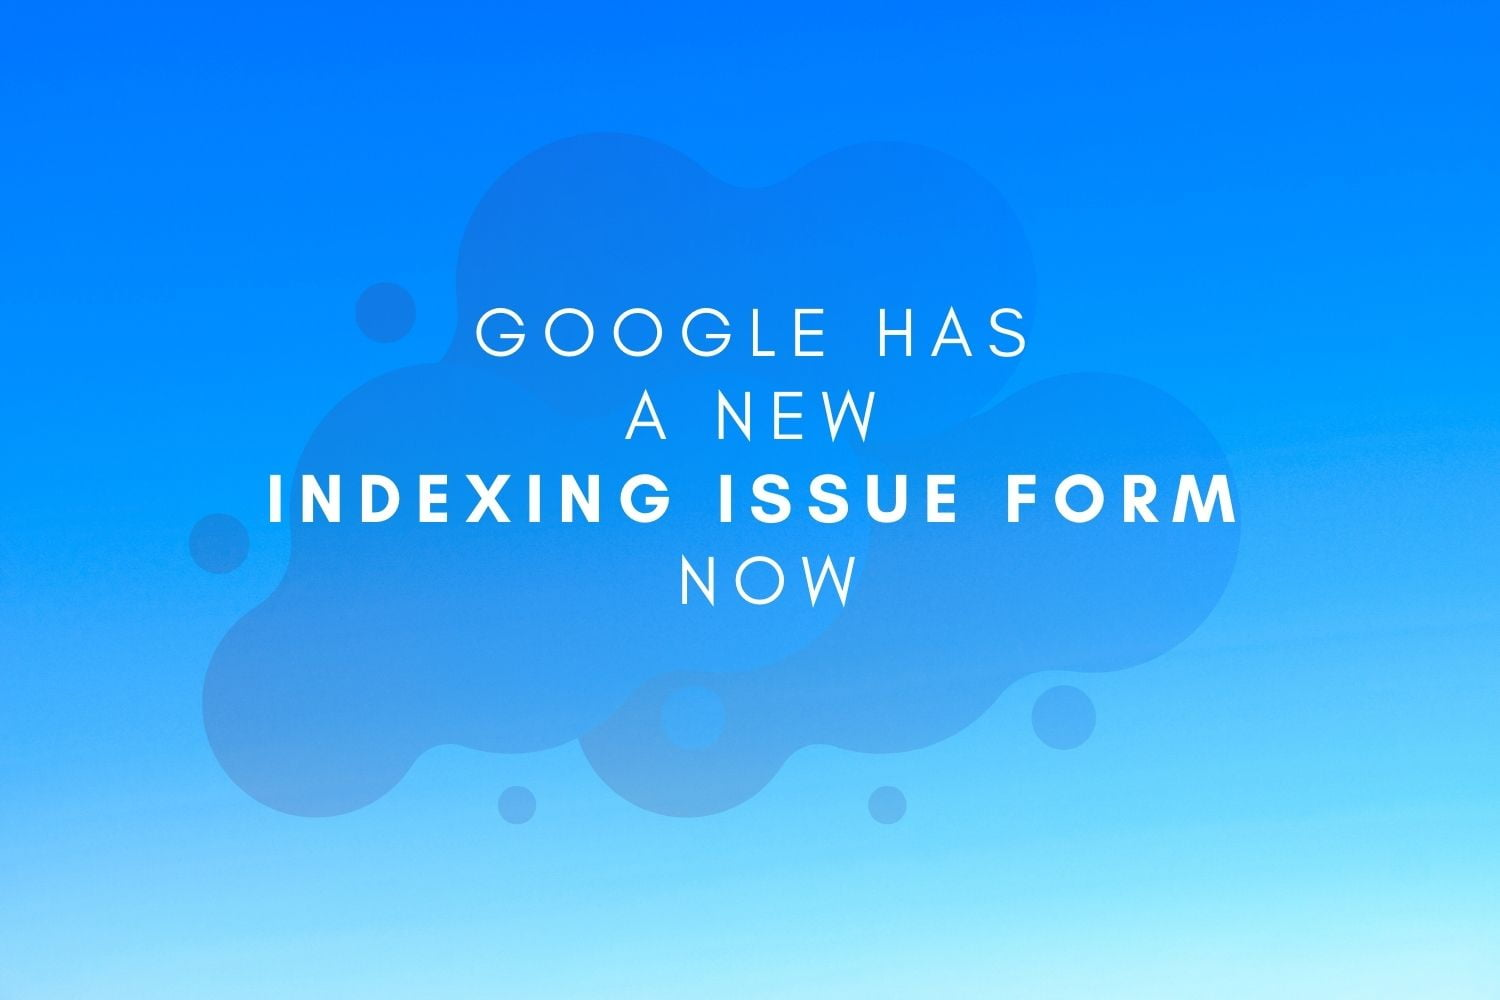 google's indexing issues form